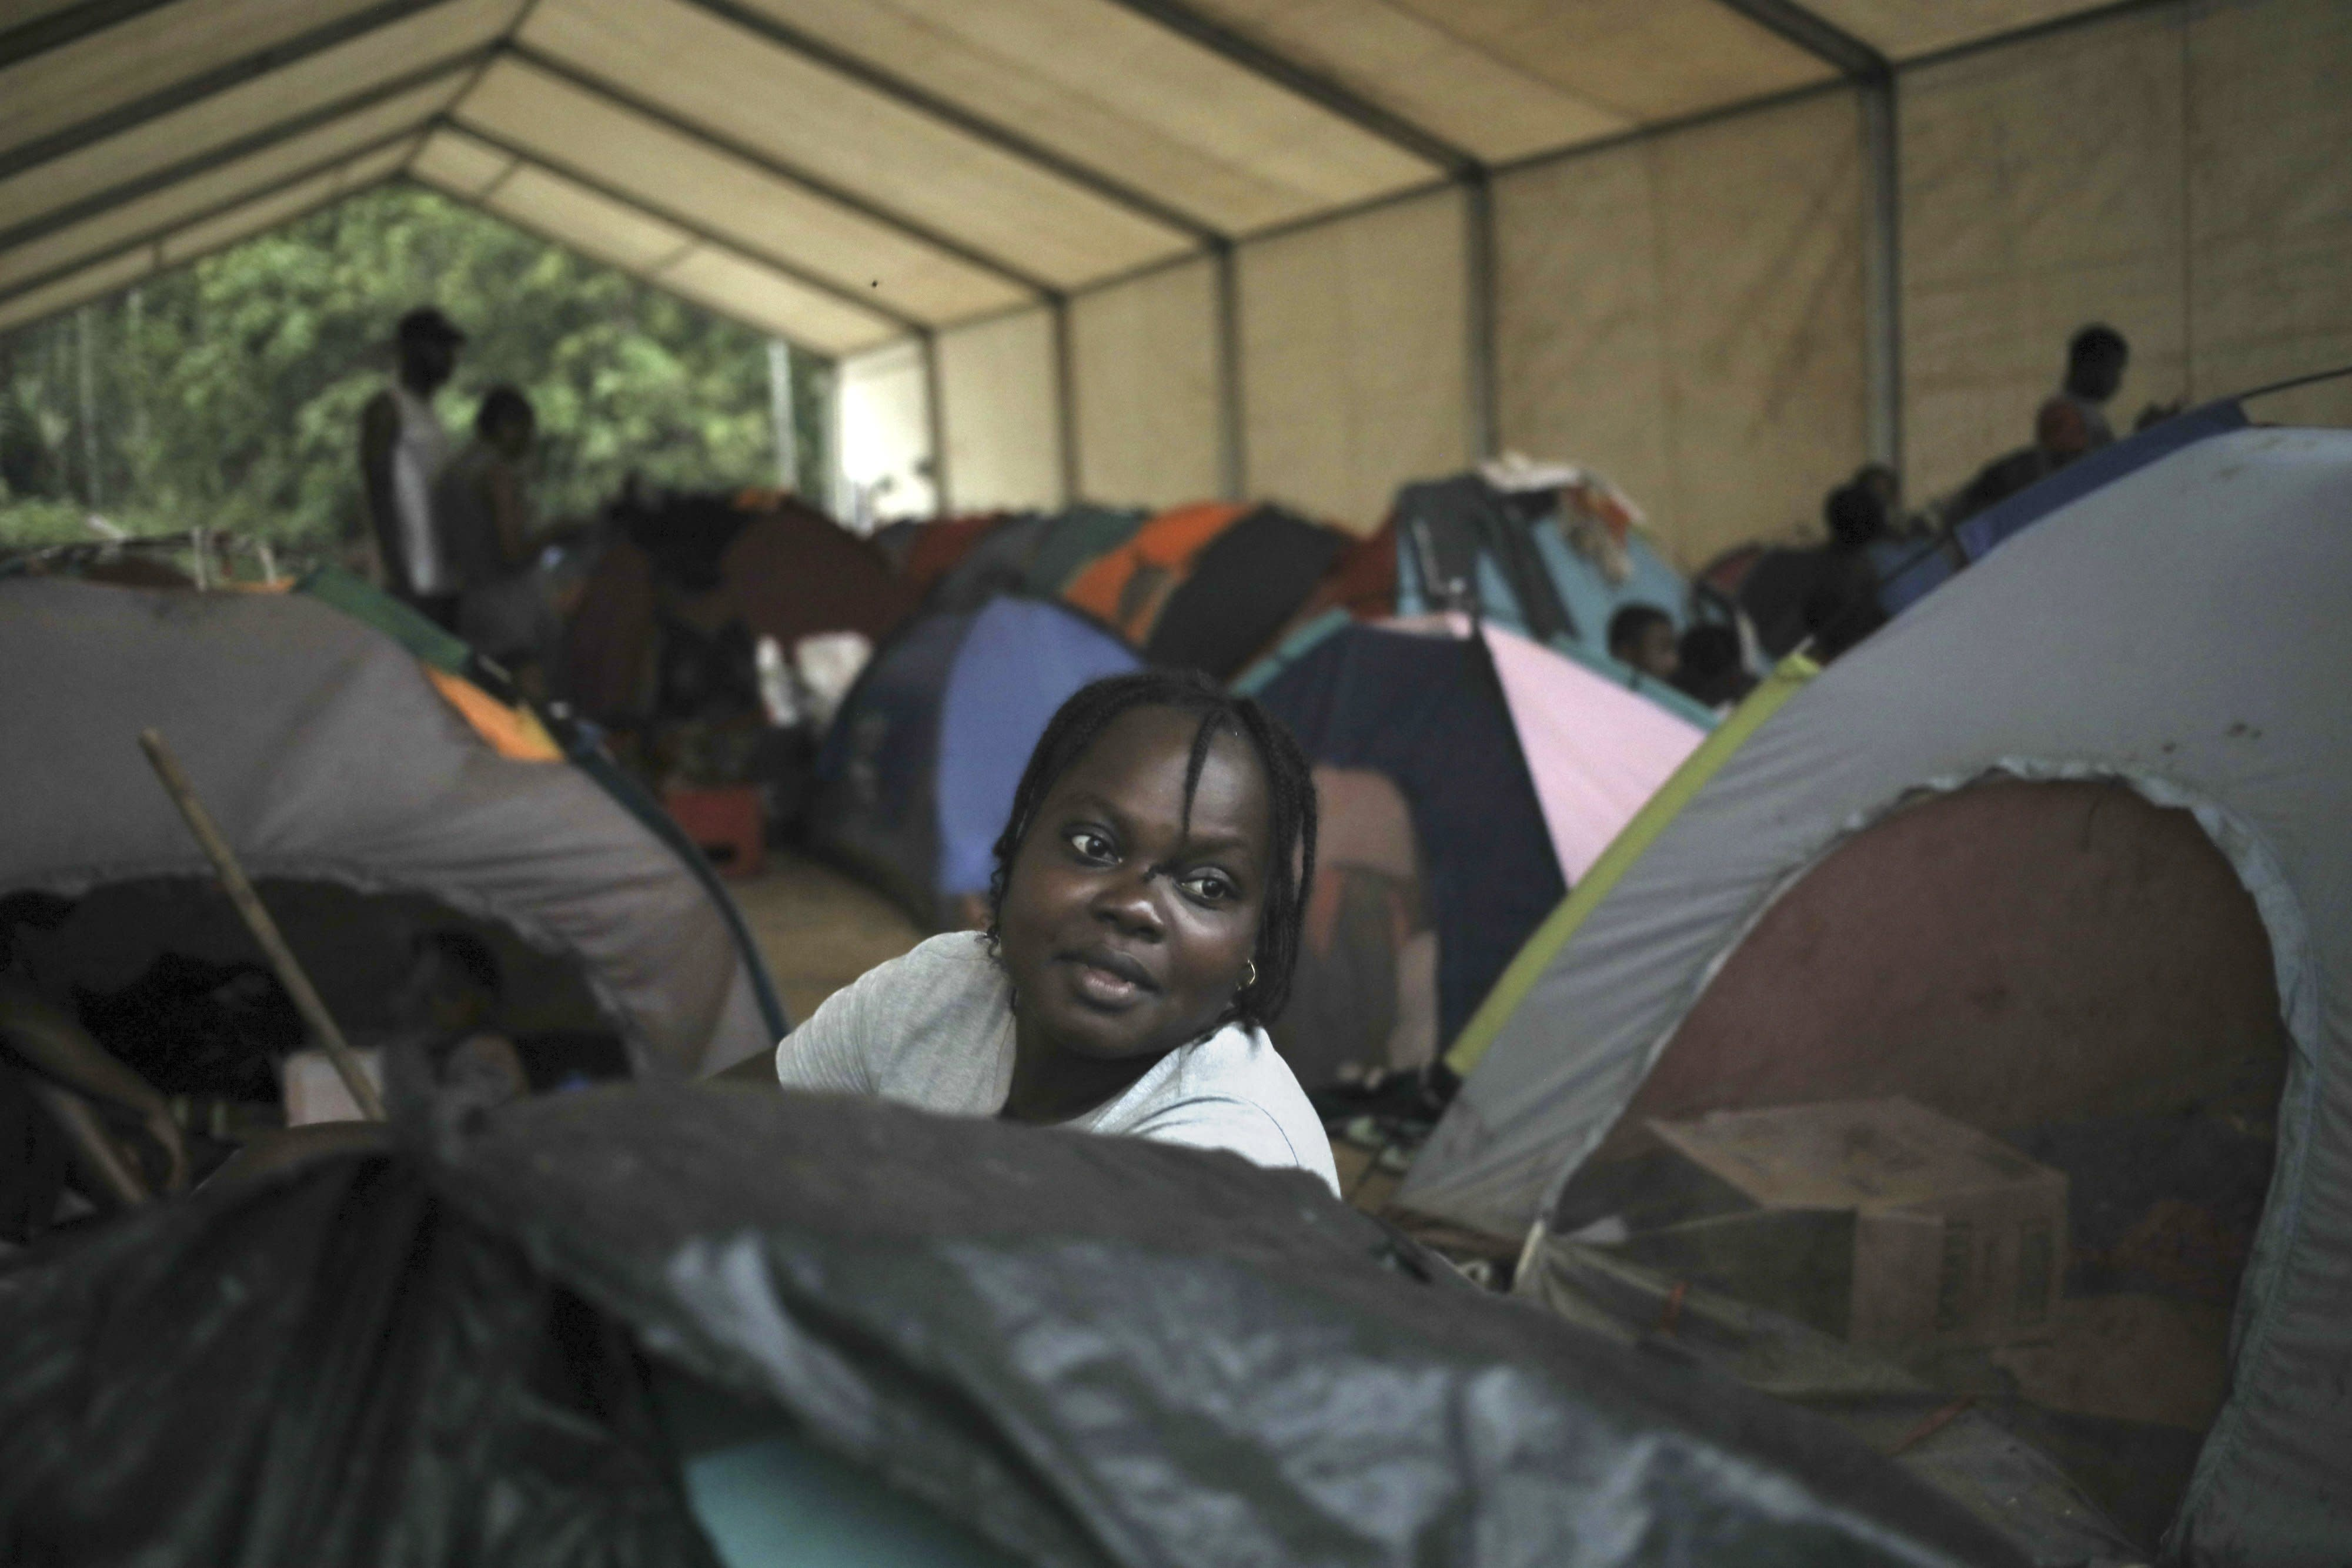 There Is a 'Dramatic Rise' in Migrants From Africa at the U.S. Border, Officials Say